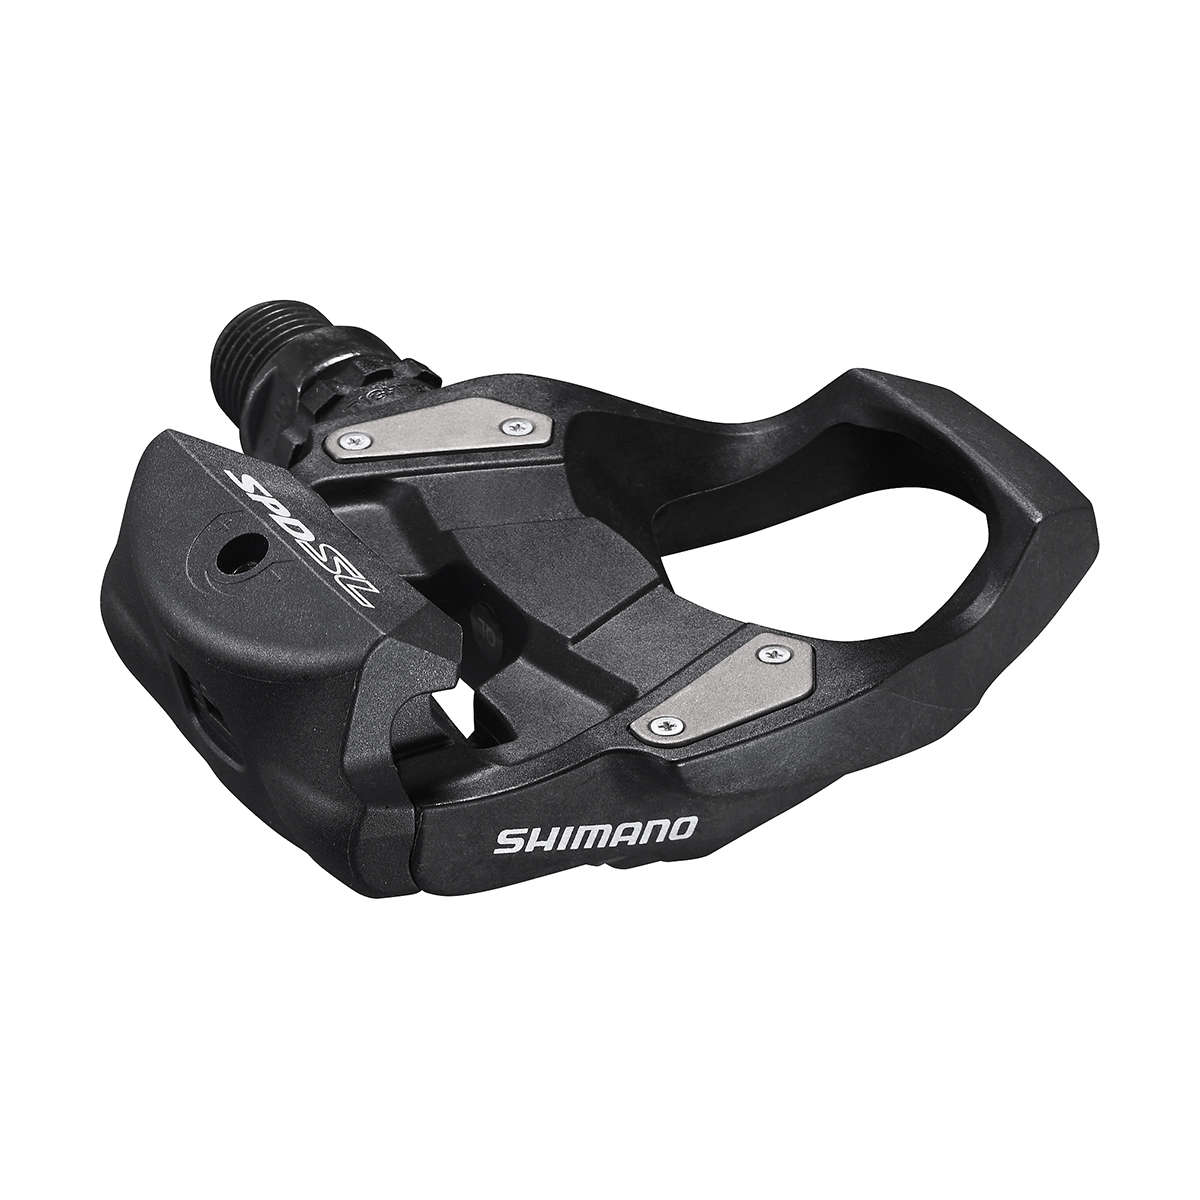 SHIMANO SPD-SL PDRS500 PEDALS